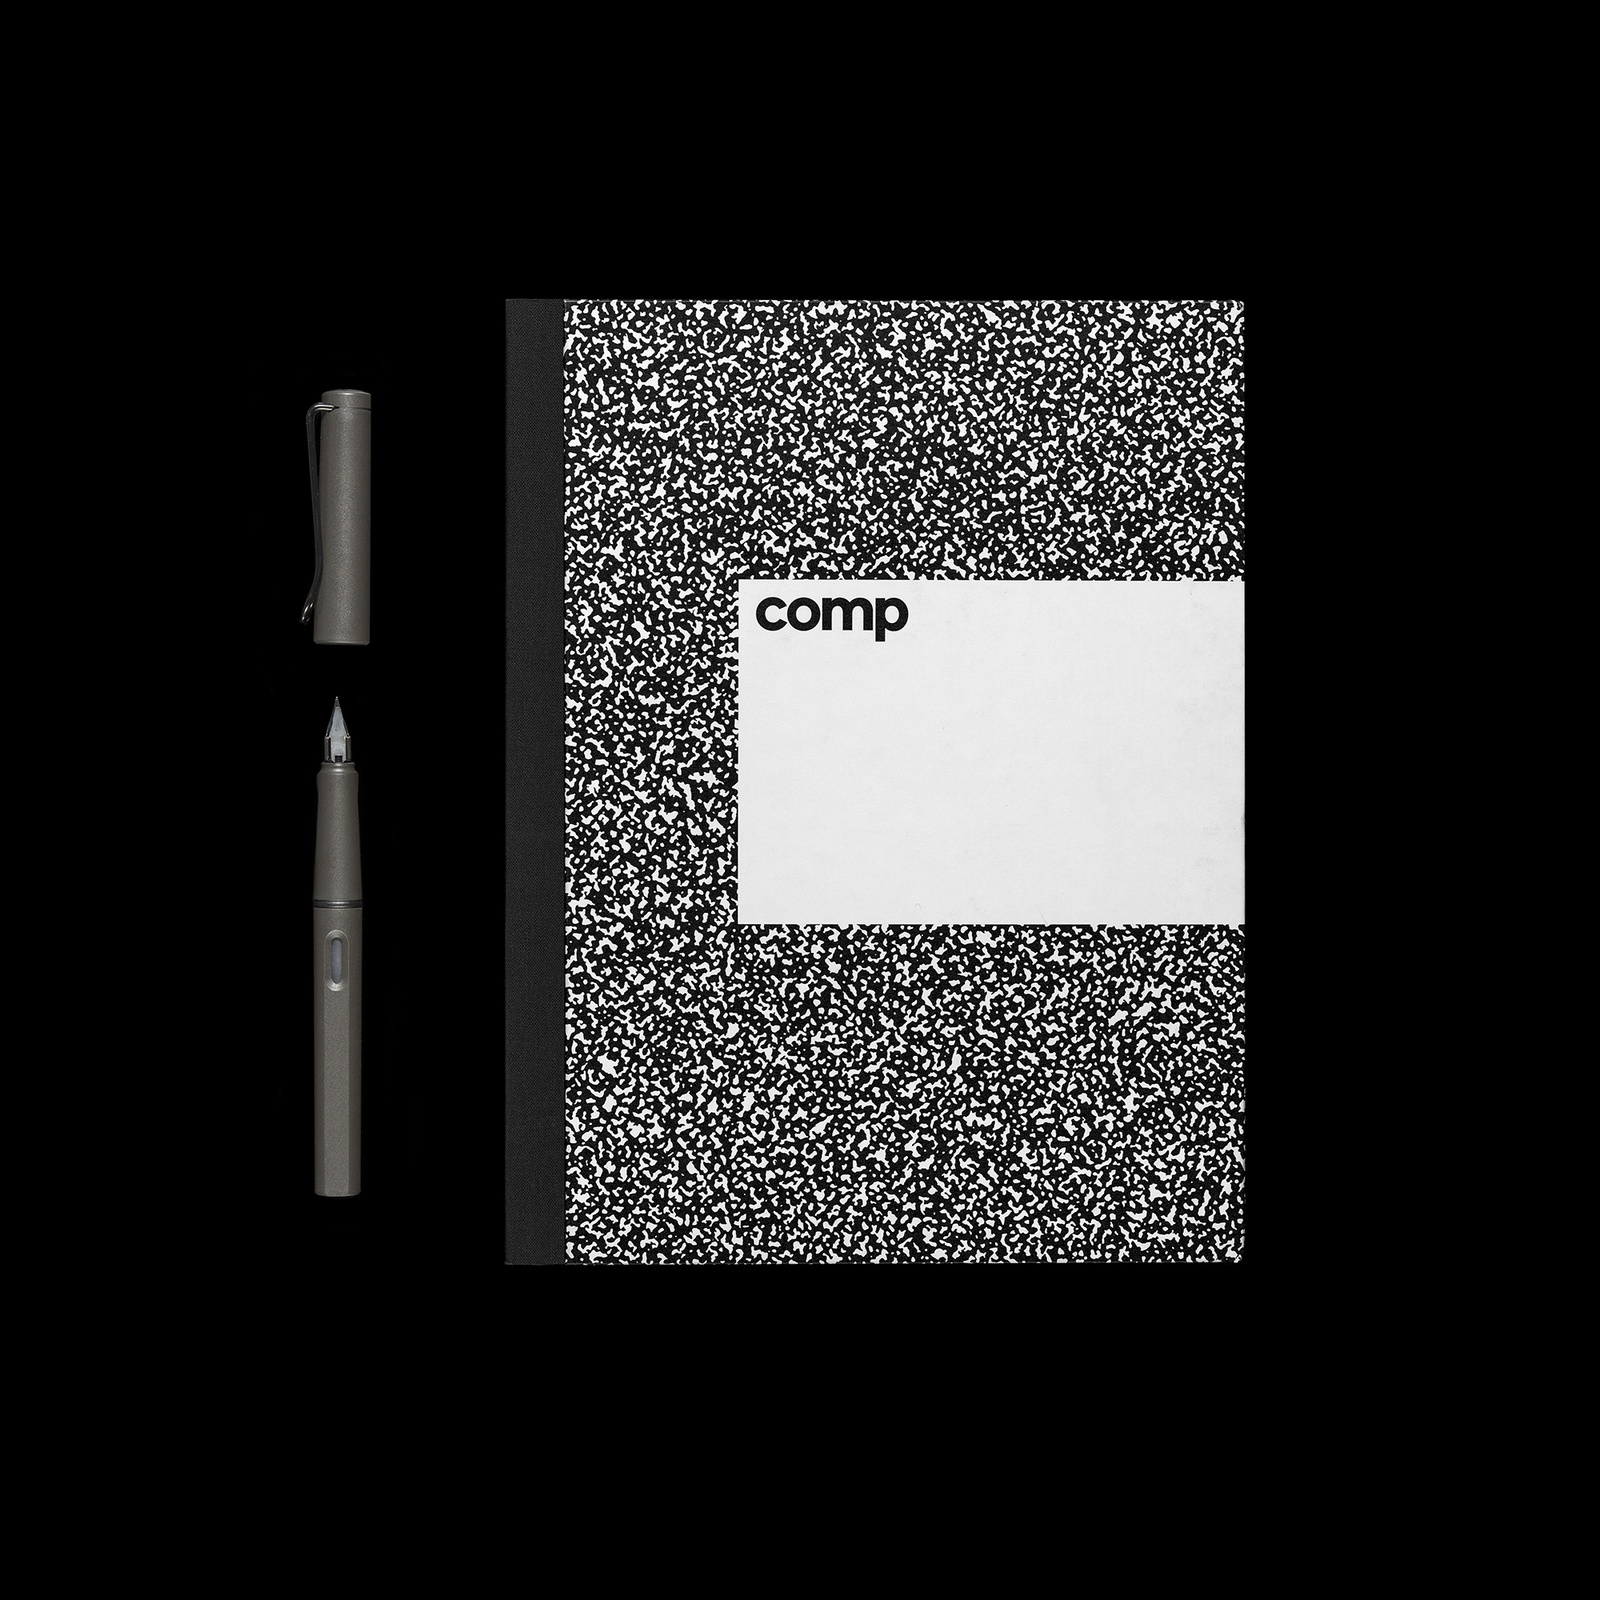 comp notebook Kickstarter